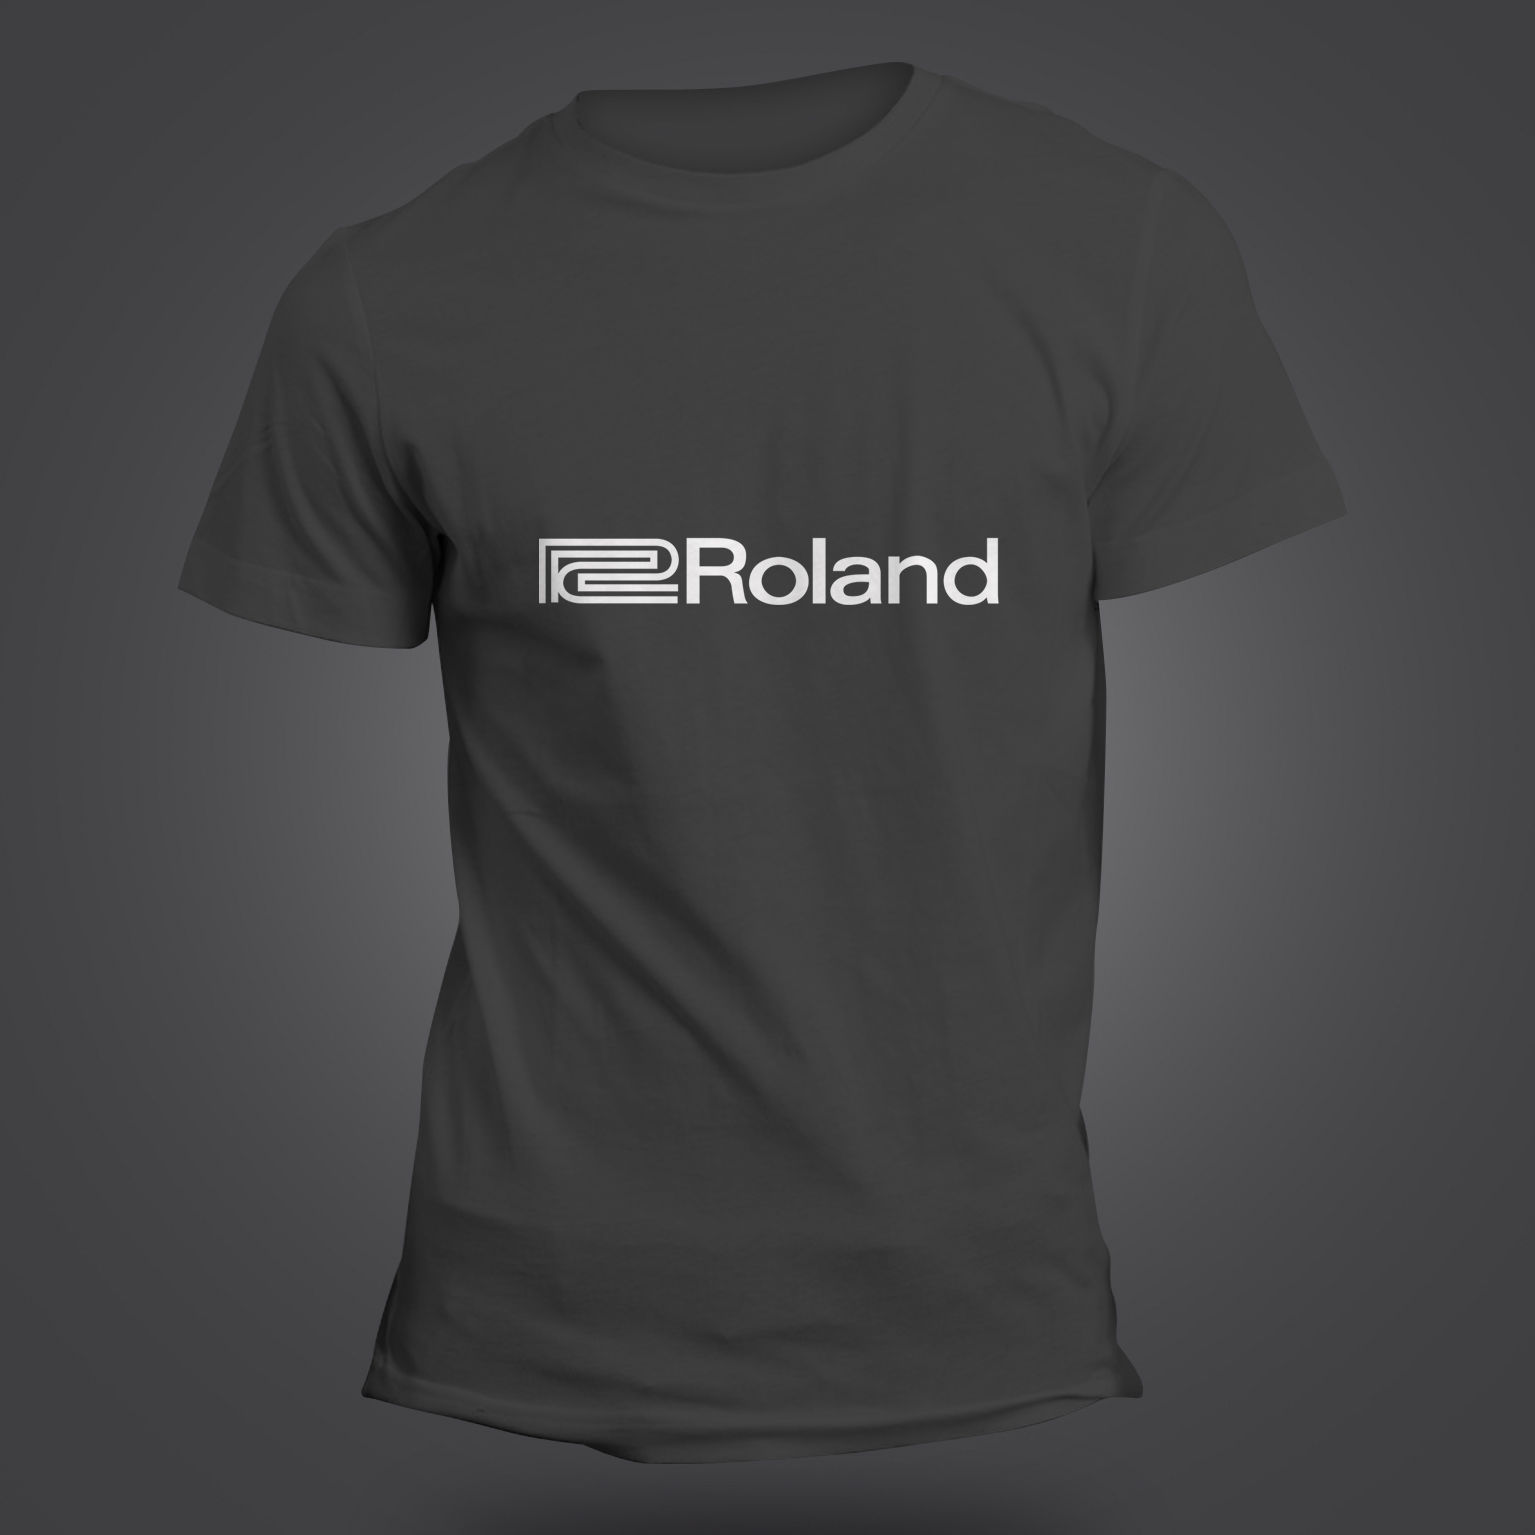 ROLAND T-SHIRT - TB 303 808 TR 909 707 STUDIO / PRODUCER CLUBWEAR 13 COLOURS New Unisex Funny free shipping